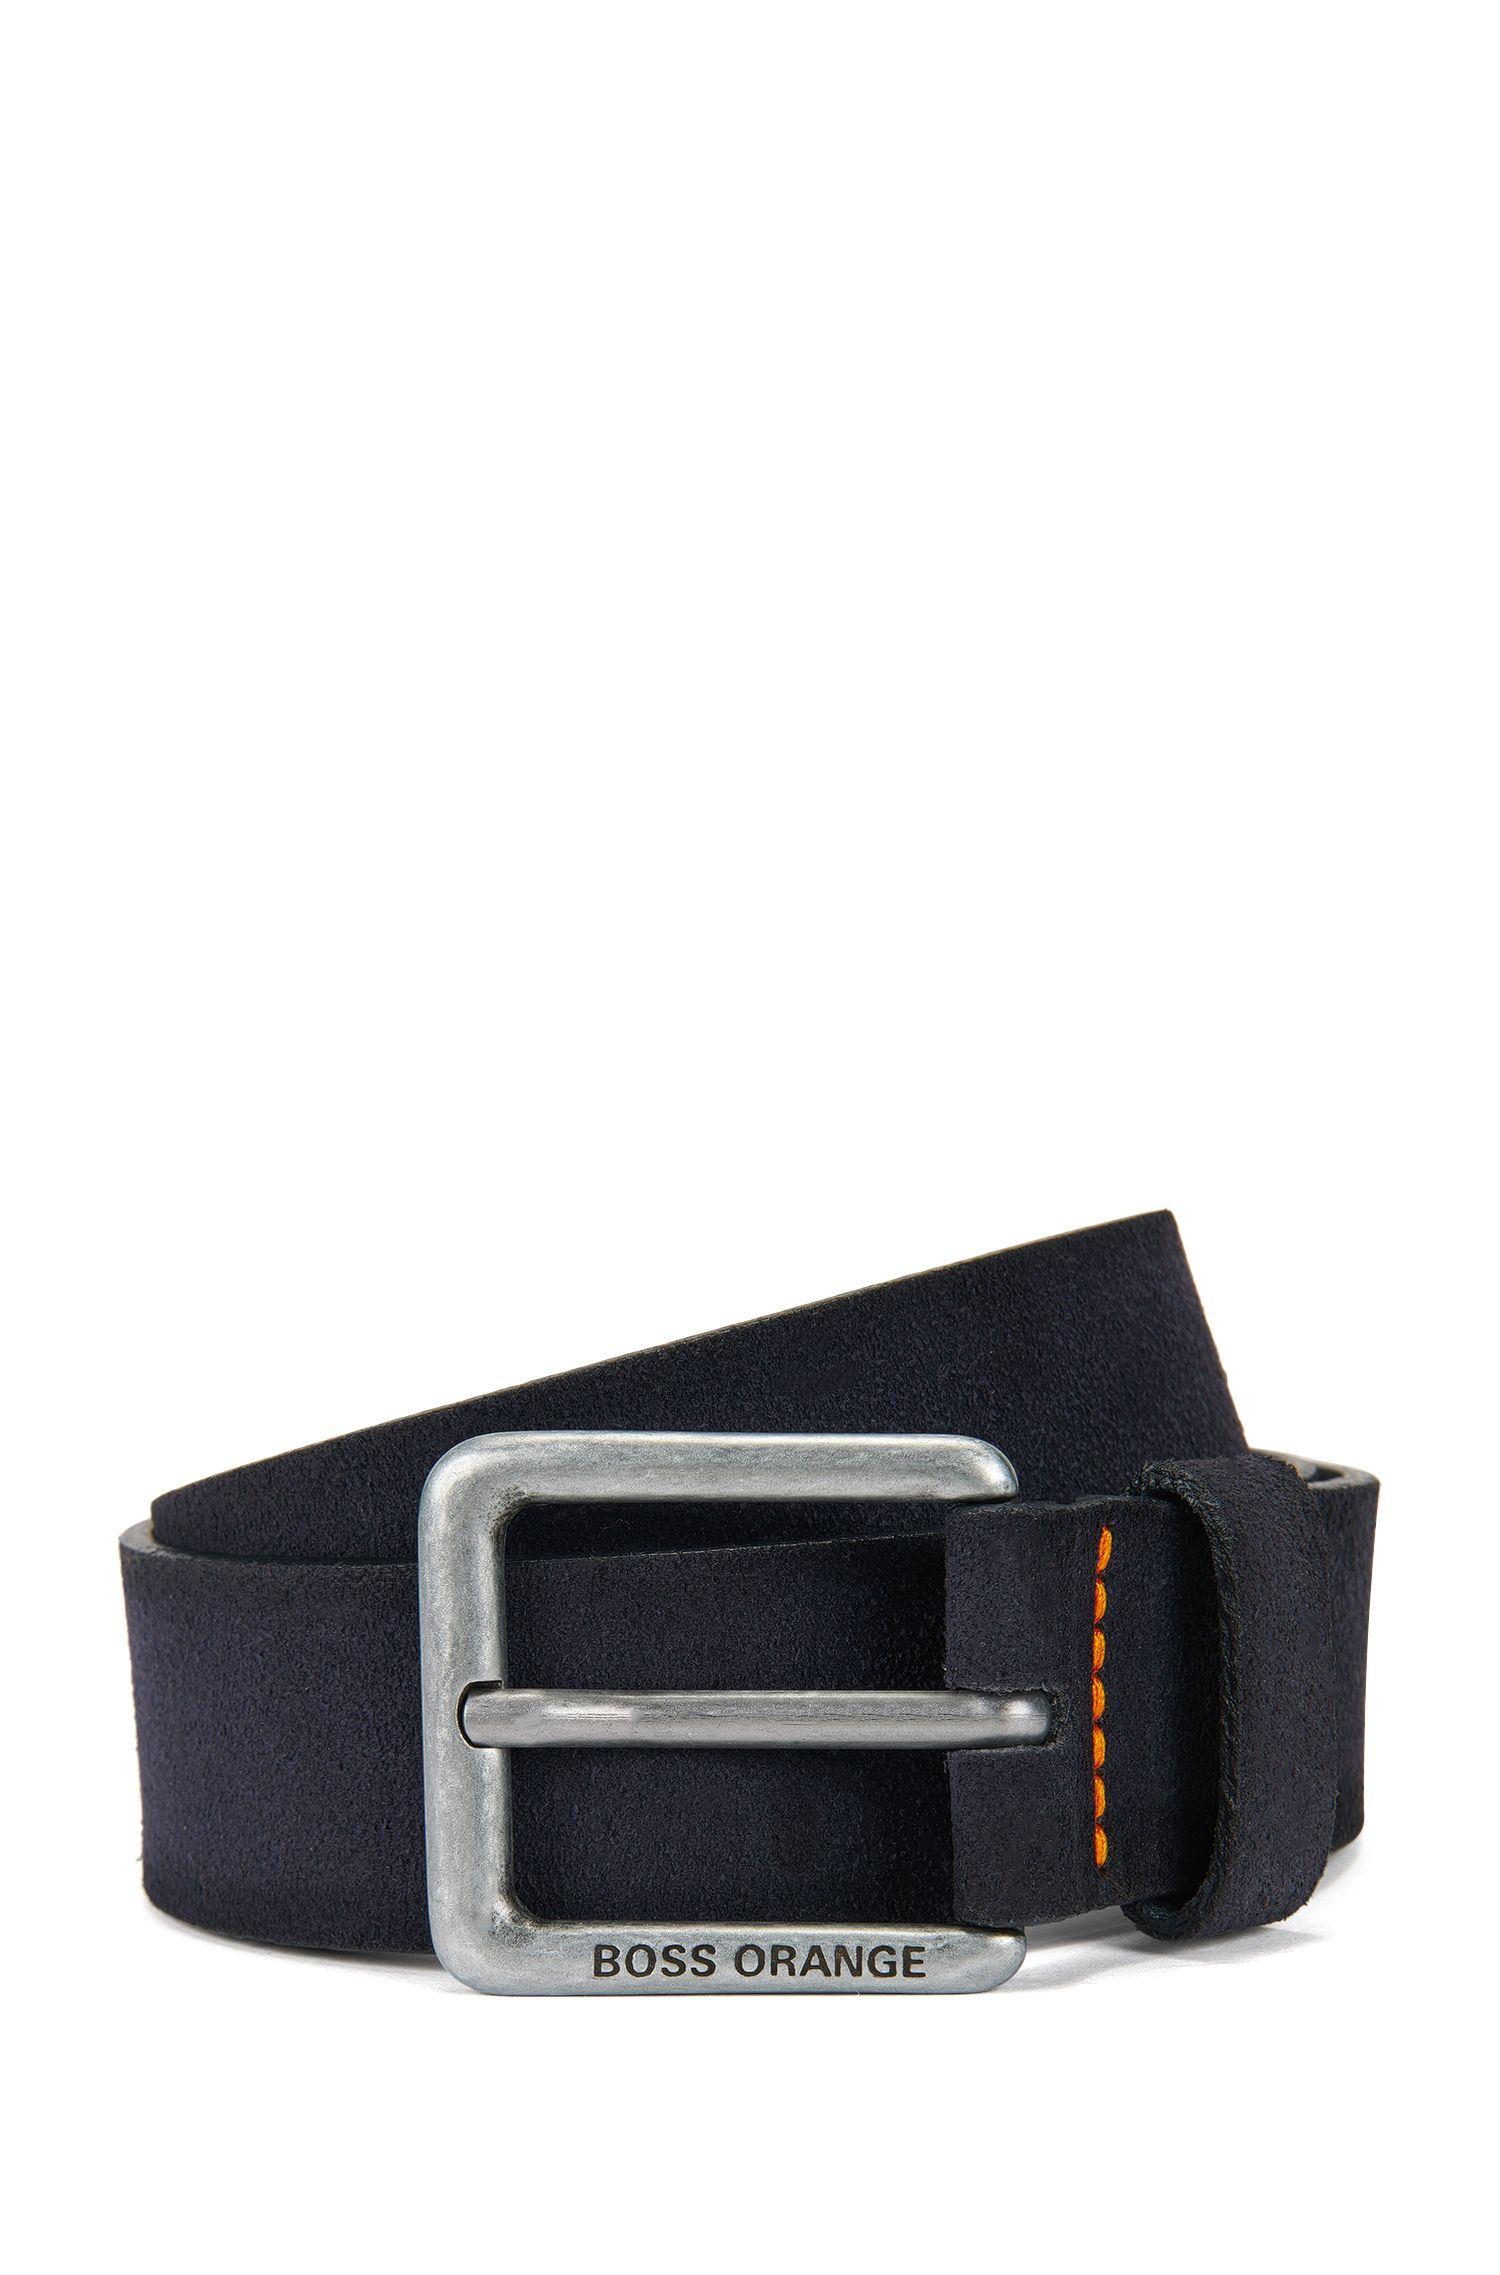 Suede belt with stitched highlights